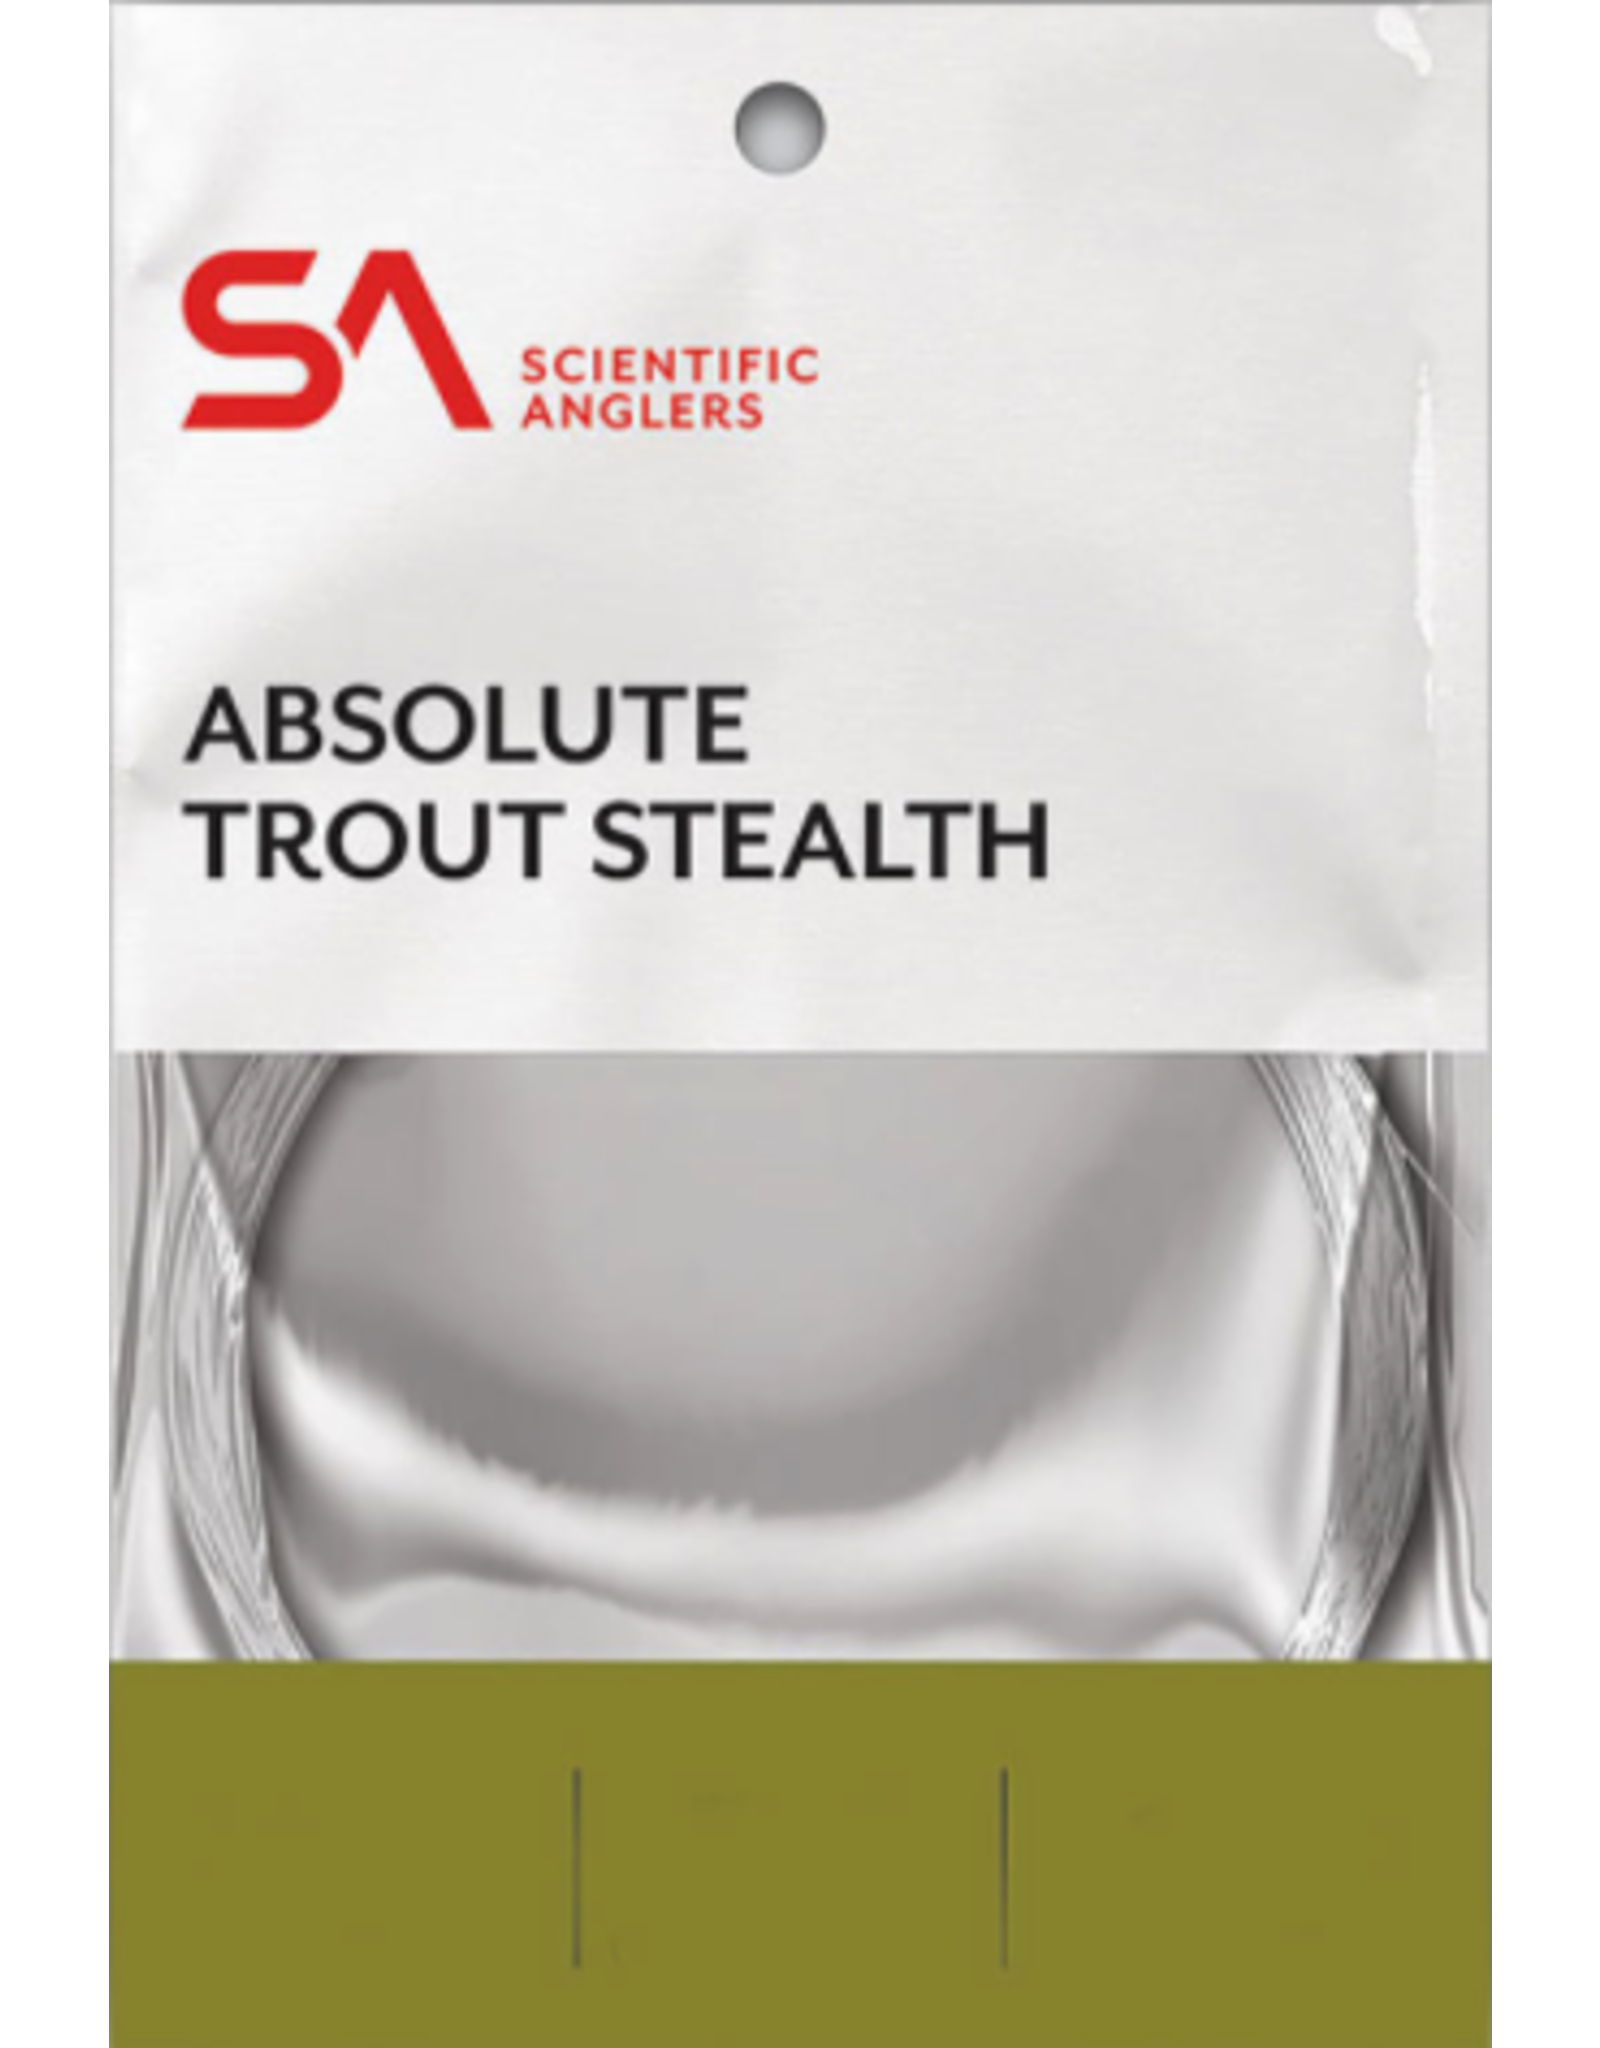 Scientific Anglers Scientific Anglers - Absolute Trout Stealth Leader